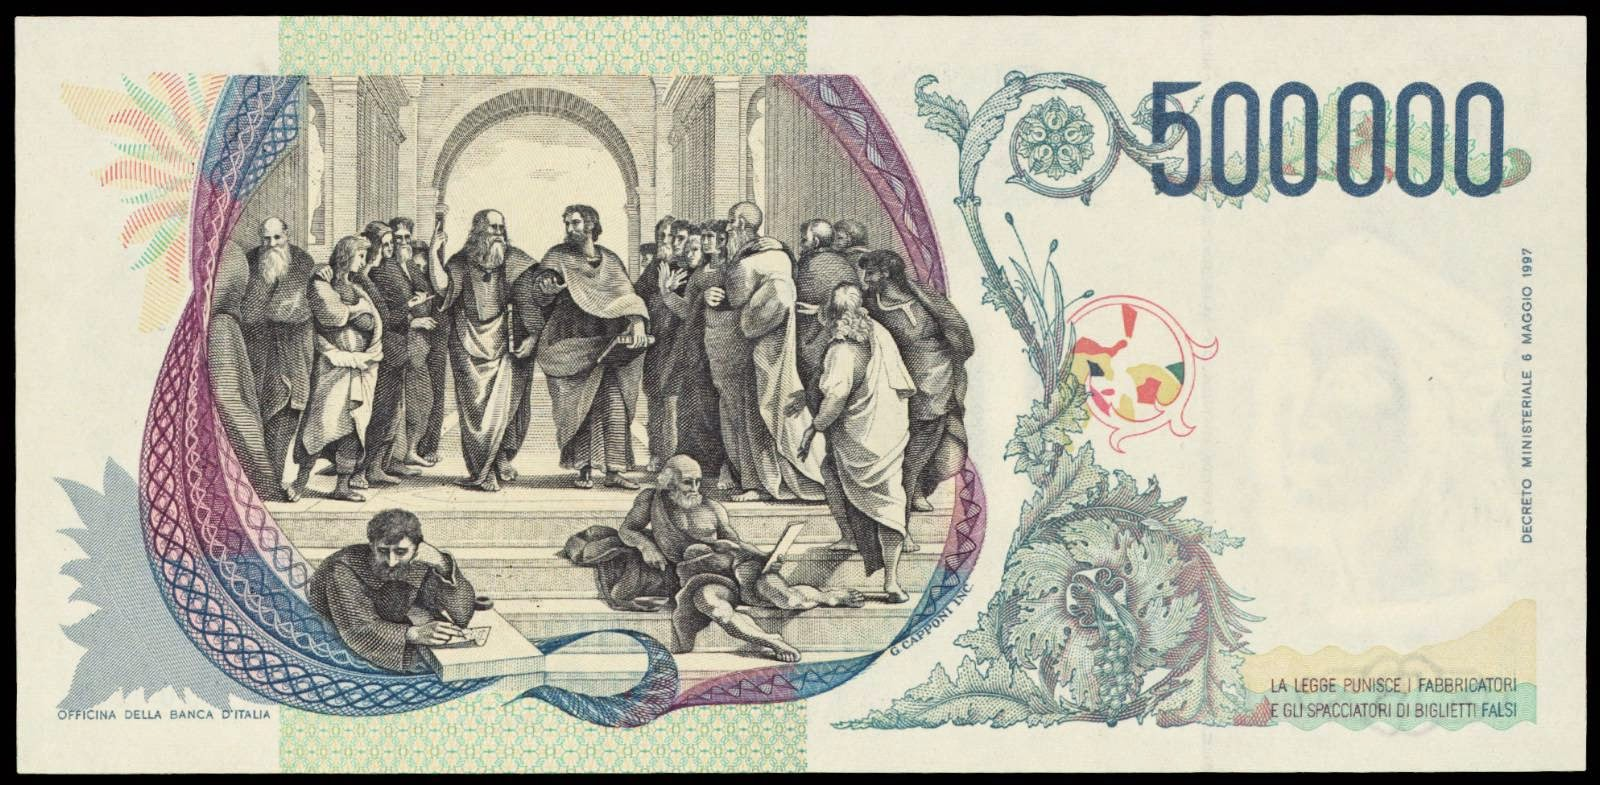 Currency of Italy 500000 Italian Lira banknote